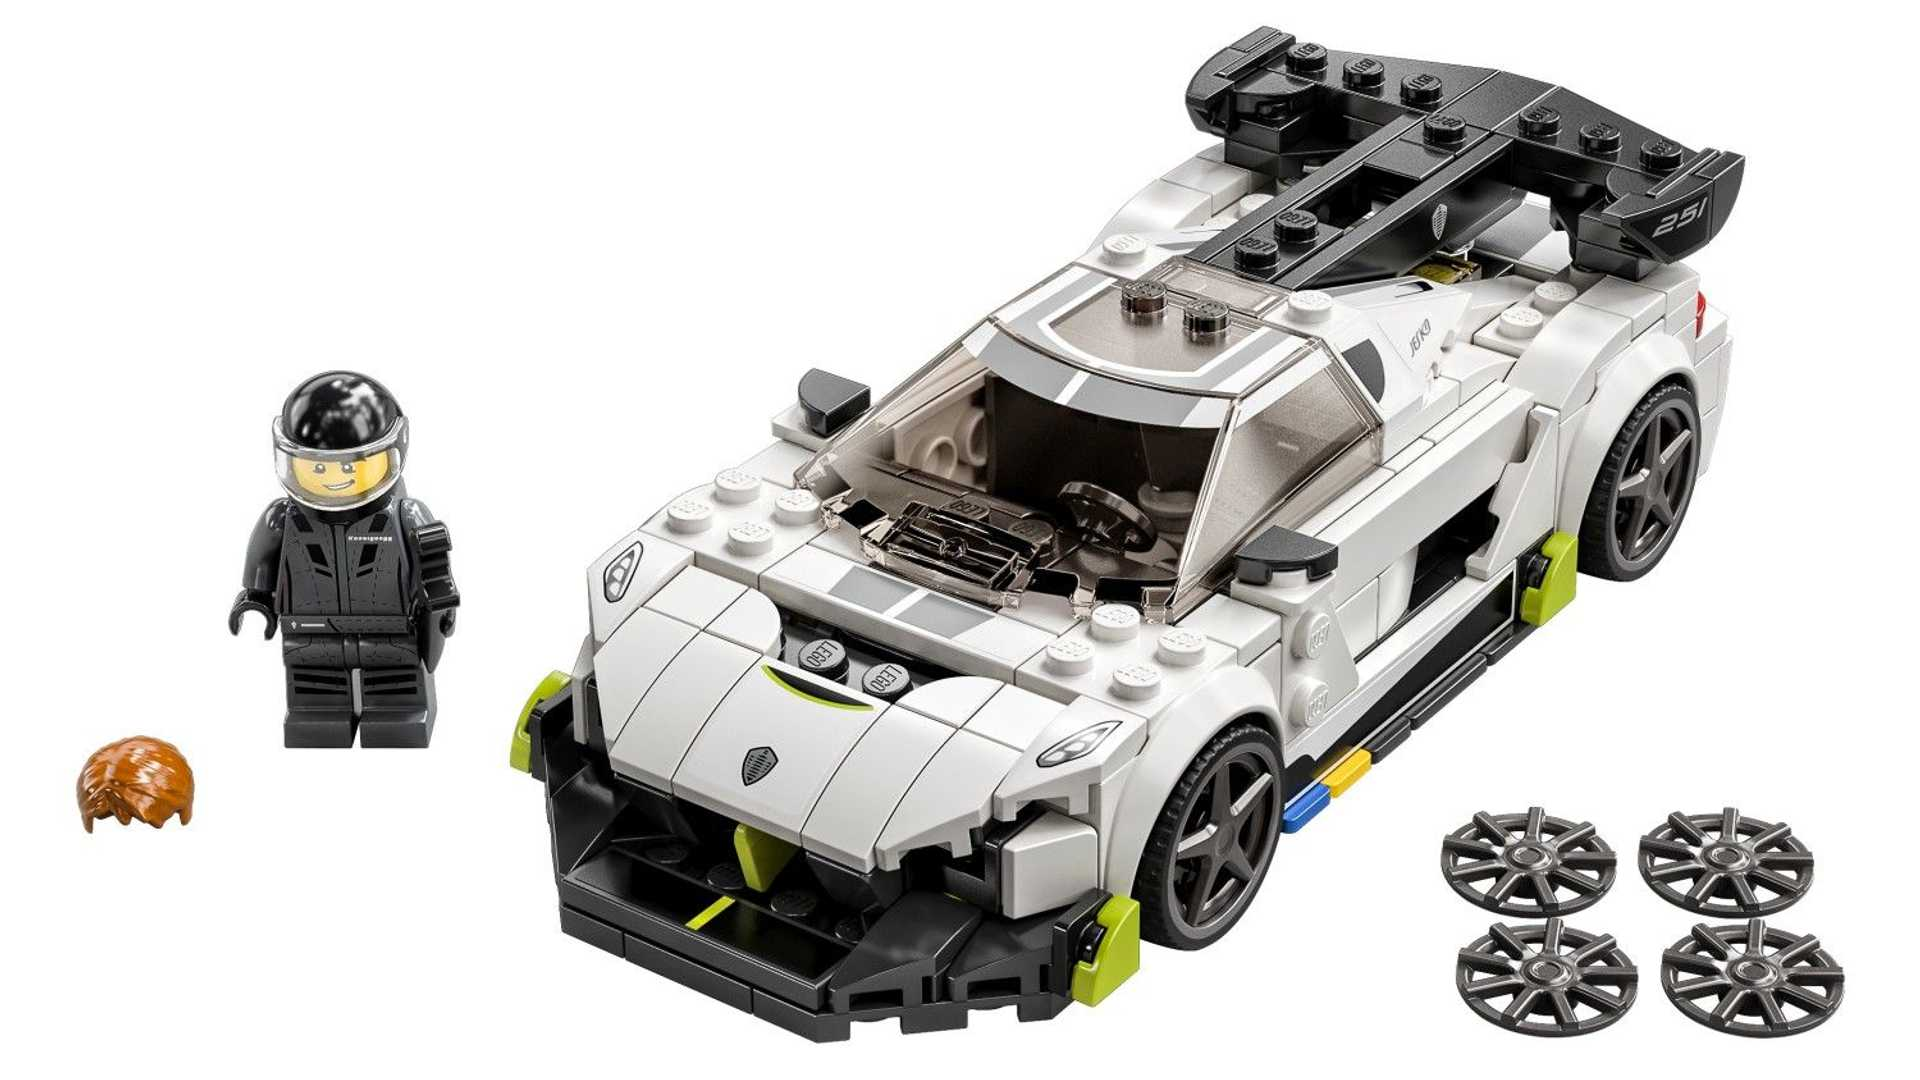 LEGO's new Speed Champions sets include Ford, Toyota, and Chevrolet 18